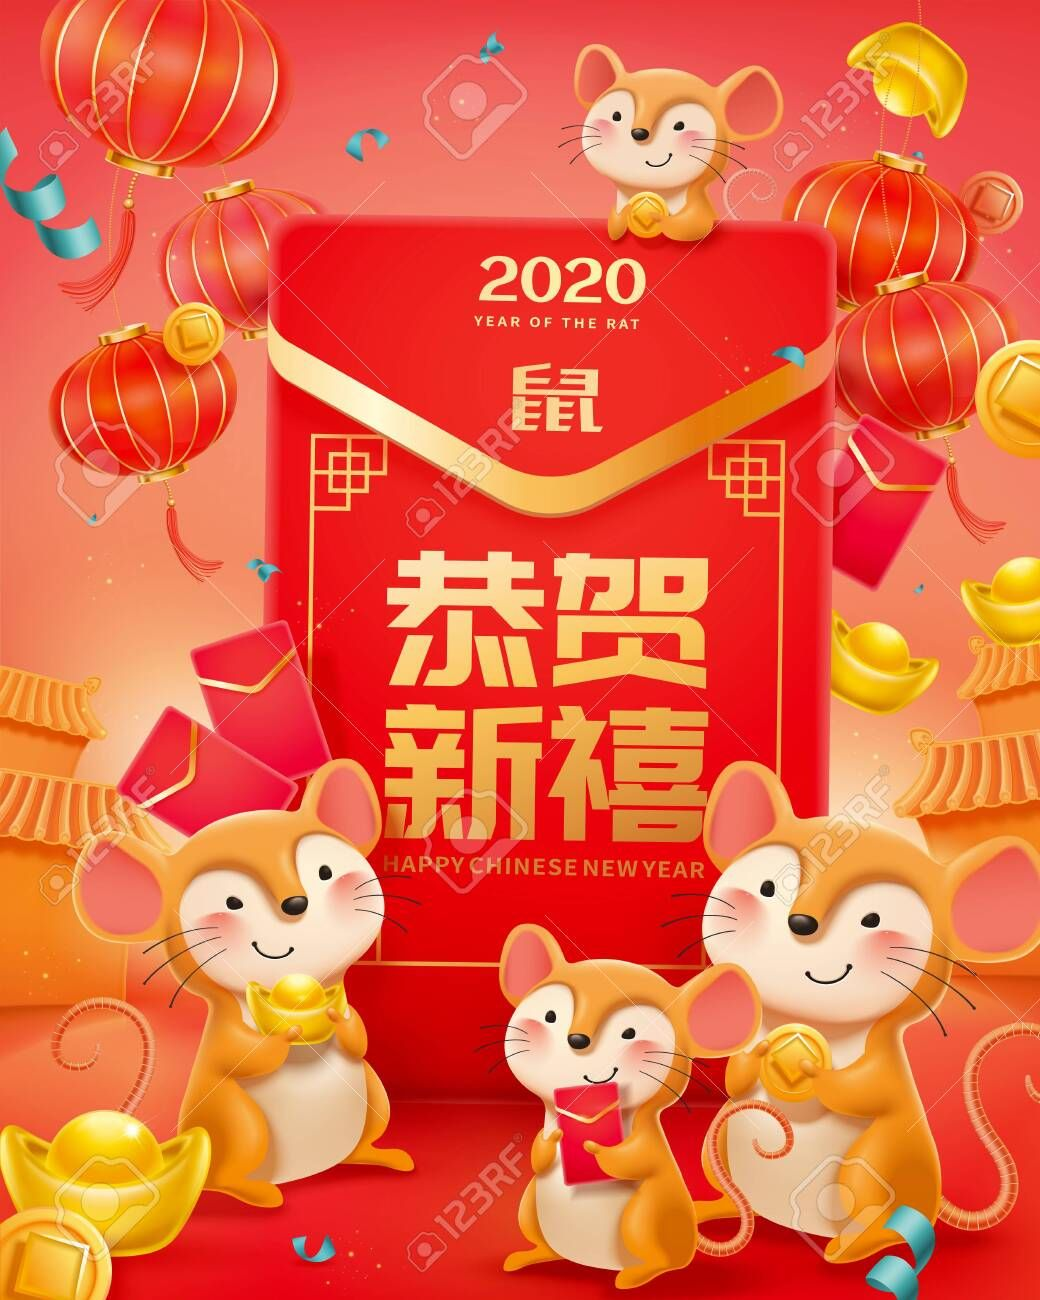 Cute Mice Holding Golden Coins With Giant Red Envelope And Gold Ingot Happy New Year And Rat Writ New Year Coloring Pages Cute Mouse Chinese New Year Greeting